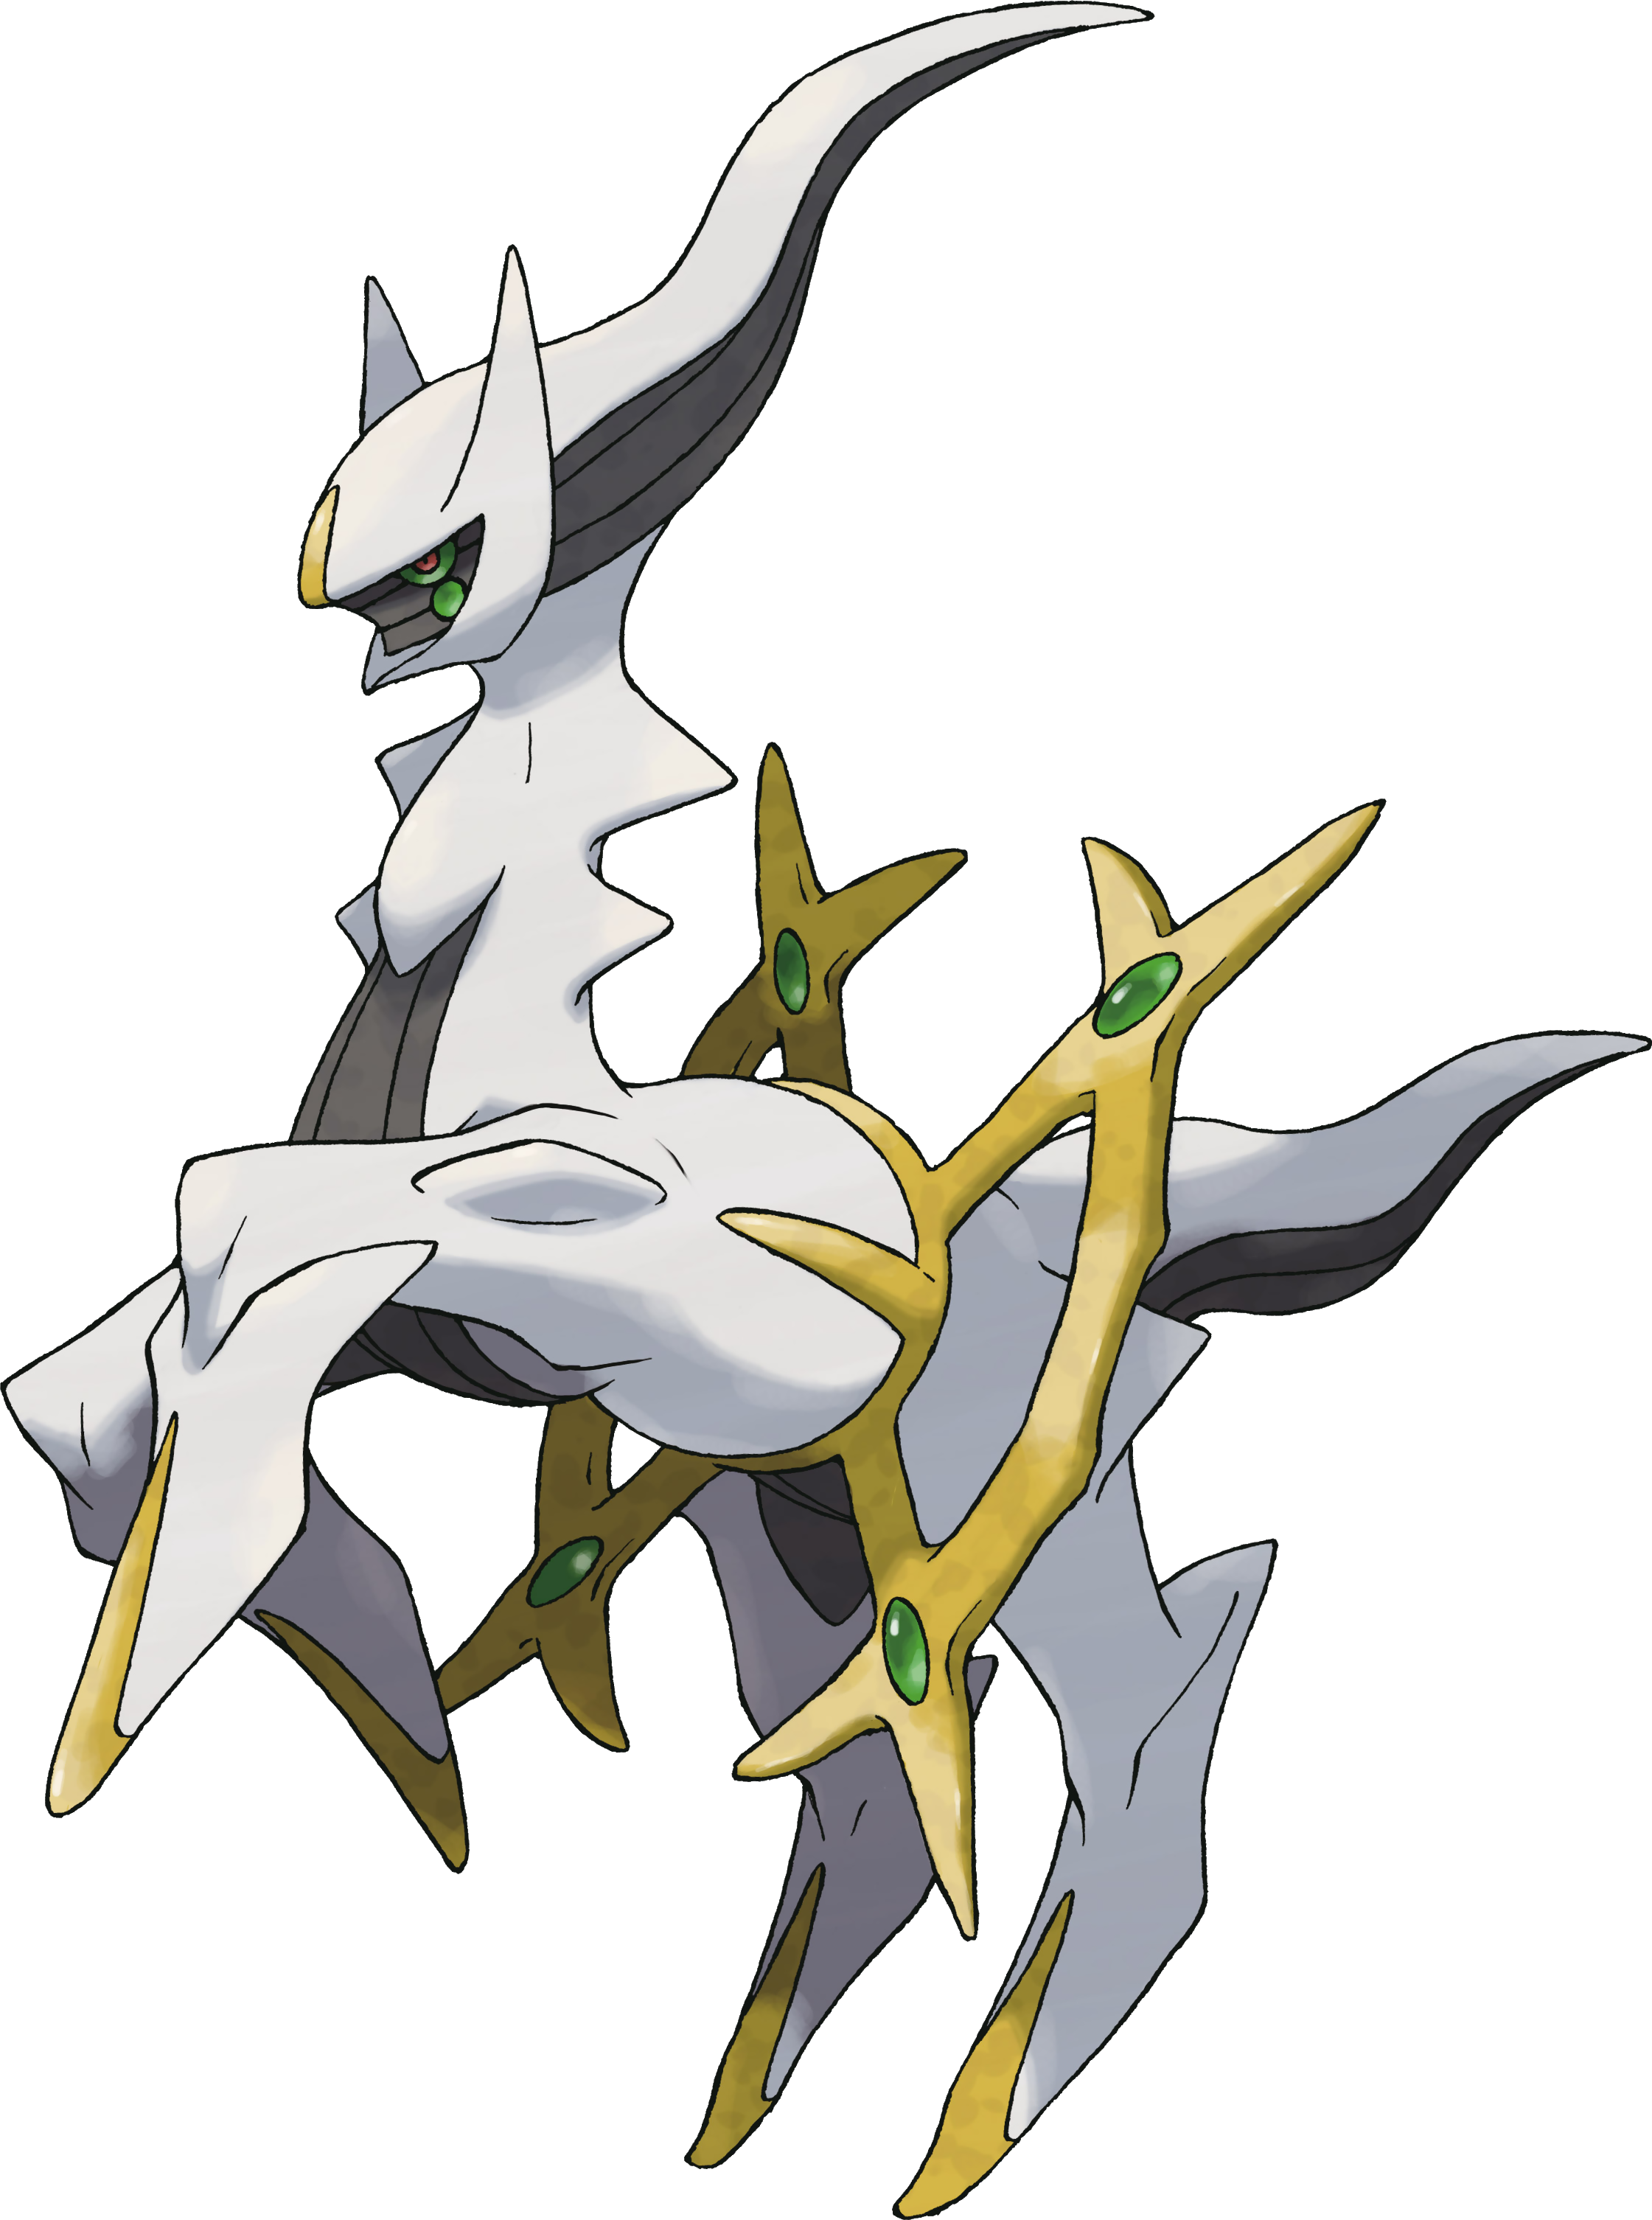 Arceus - Villains Wiki - villains, bad guys, comic books, anime